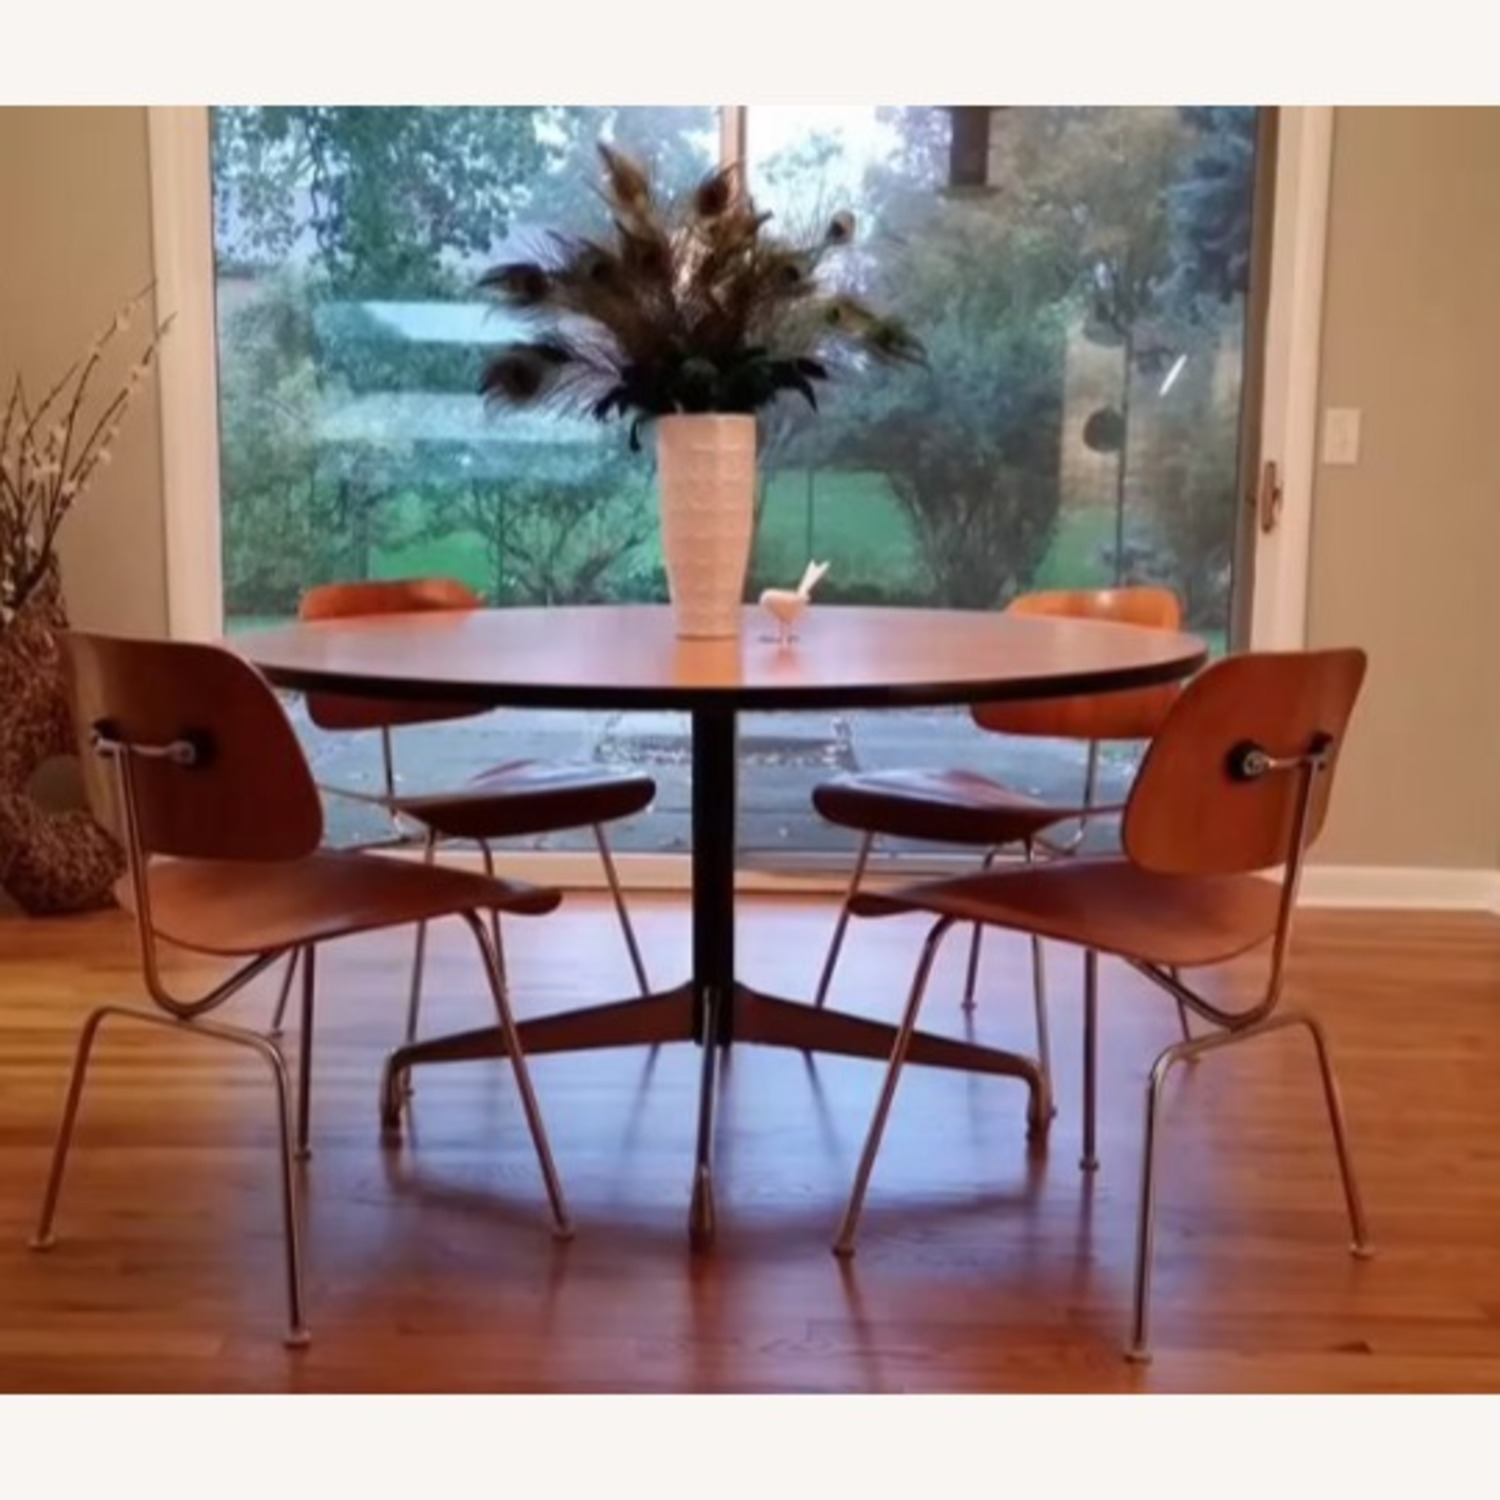 Herman Miller Eames Dining Table 54inches - image-2